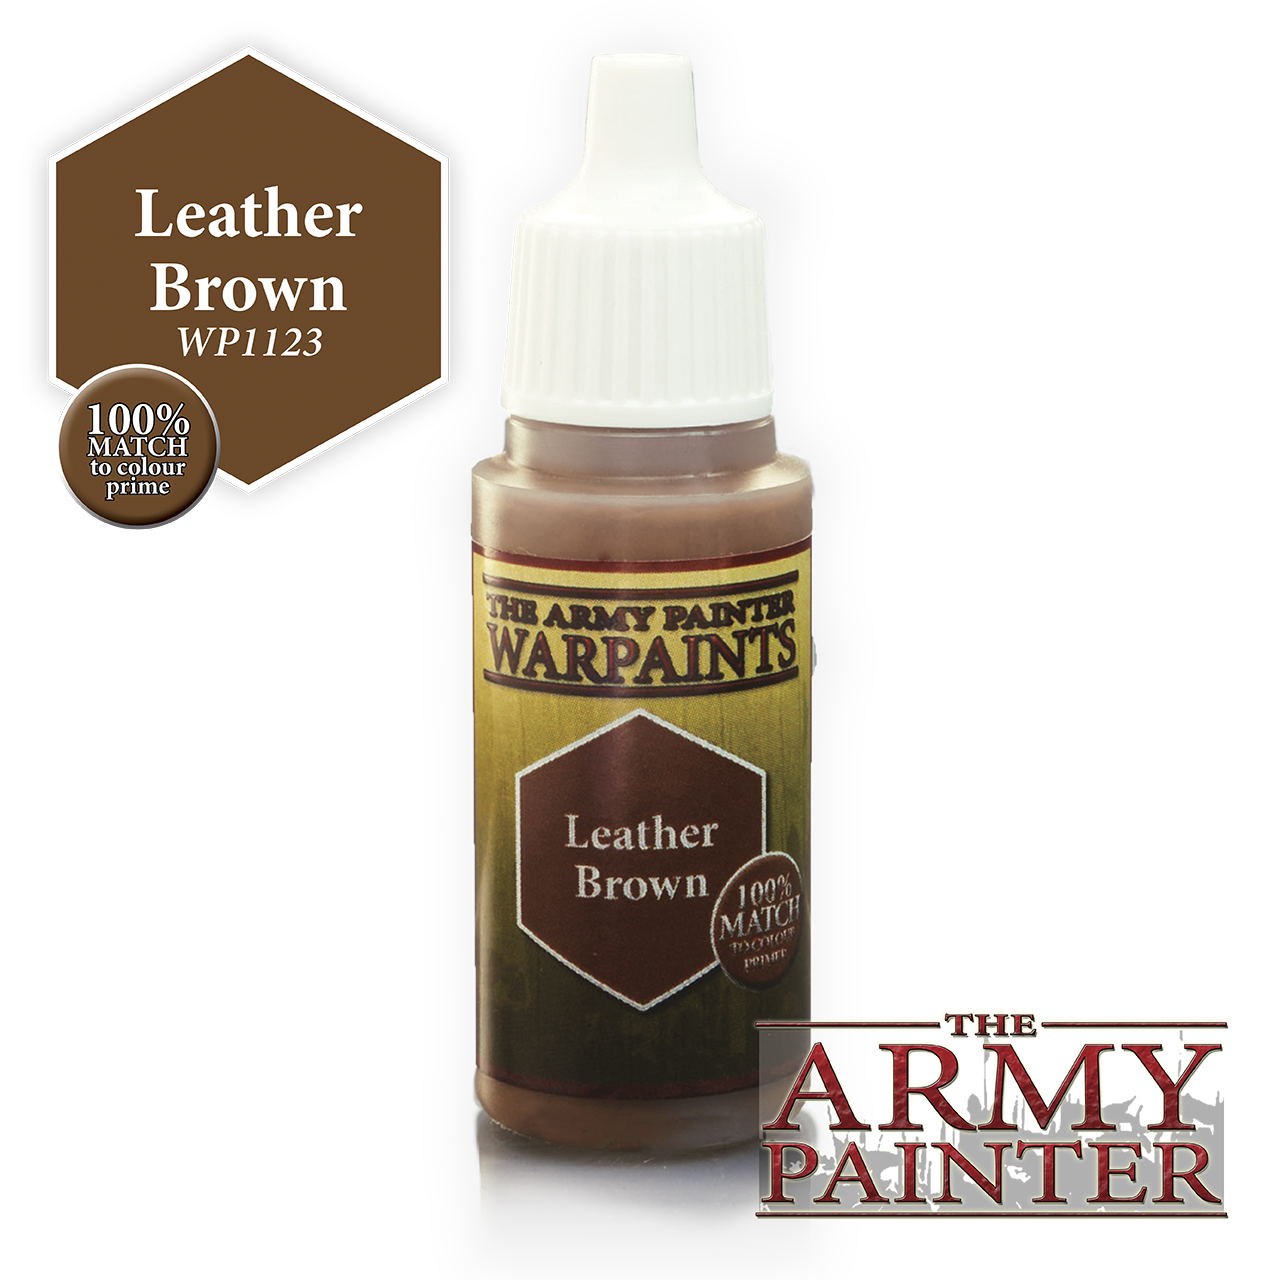 The Army Painter Warpaints: Leather Brown (18ml)